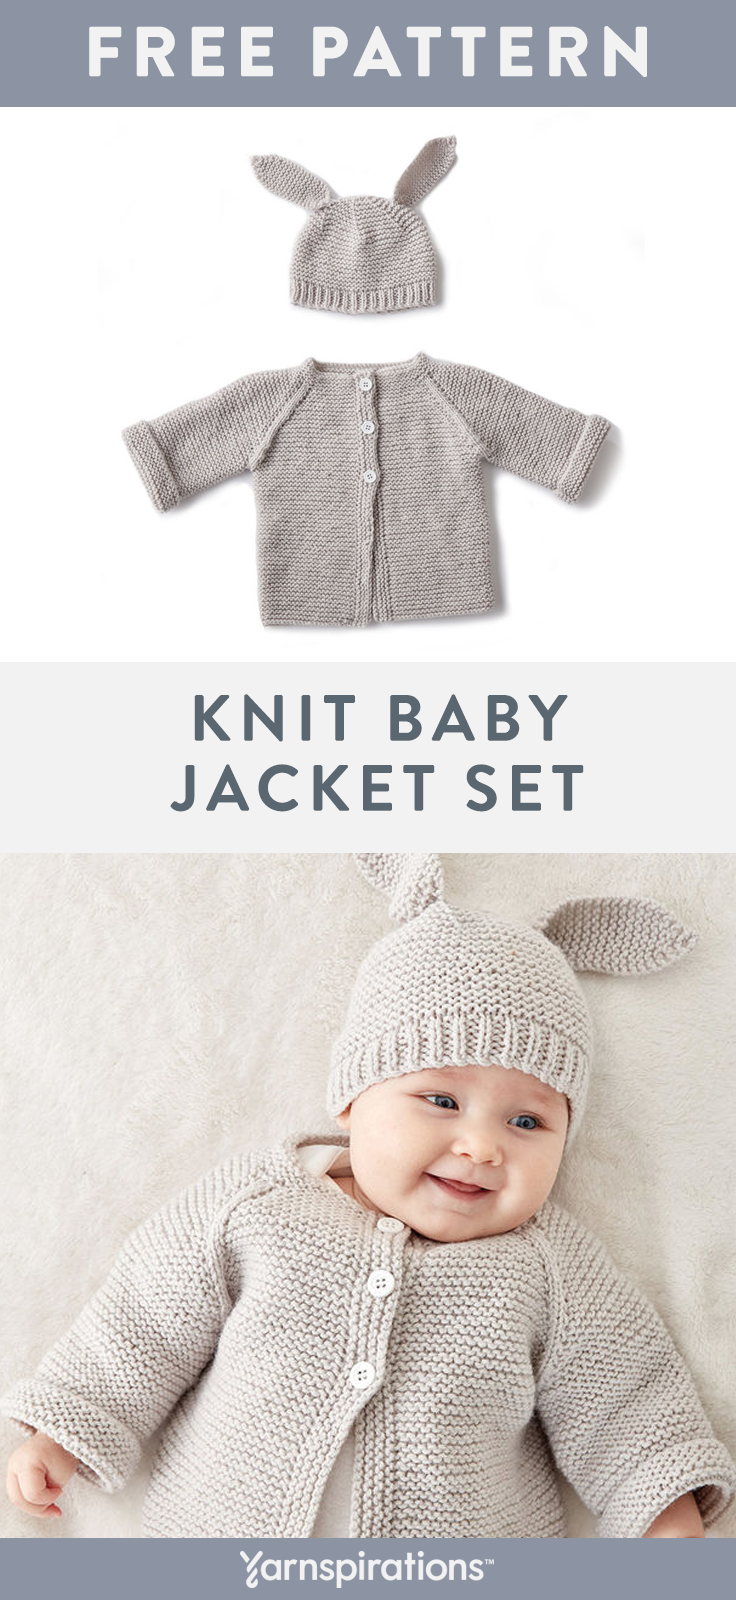 Free Knit Baby Jacket Hat Pattern Knit This Sweet Coordinating Hat And Sweater Set T Knit Baby Jackets Baby Sweater Patterns Baby Sweater Knitting Pattern